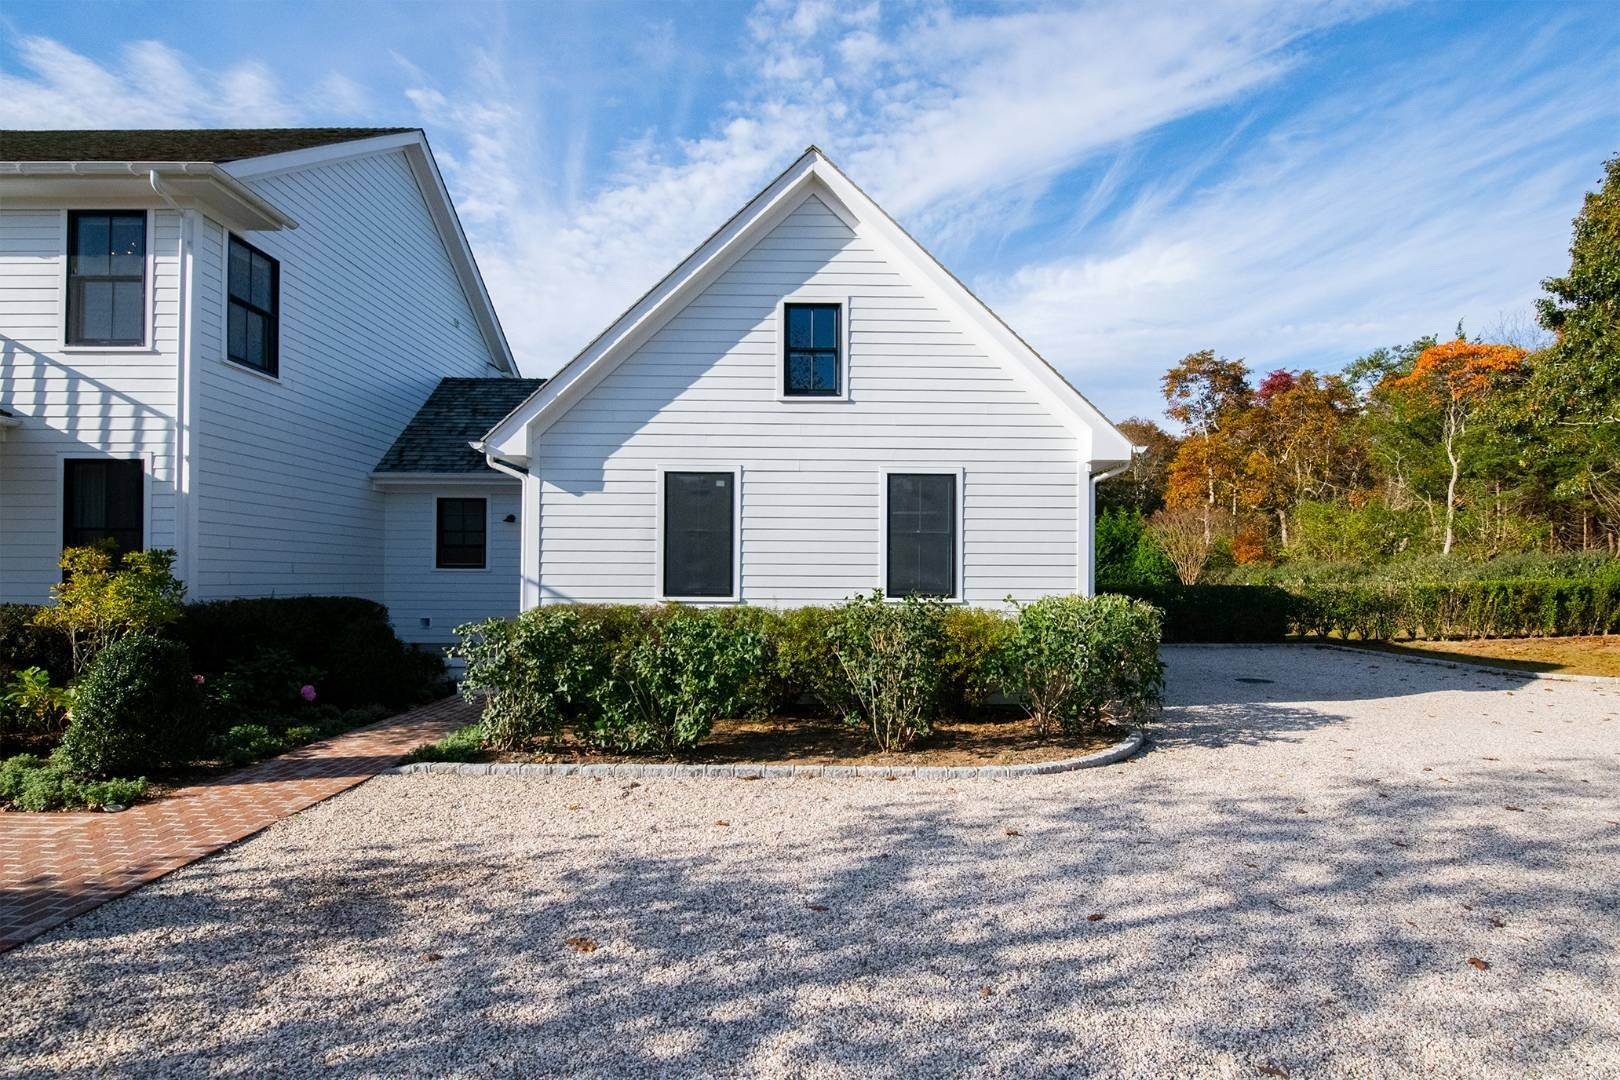 21. Single Family Home at Sagaponack Horse Farm Views 172 Narrow Lane East, Sagaponack Village, NY 11962